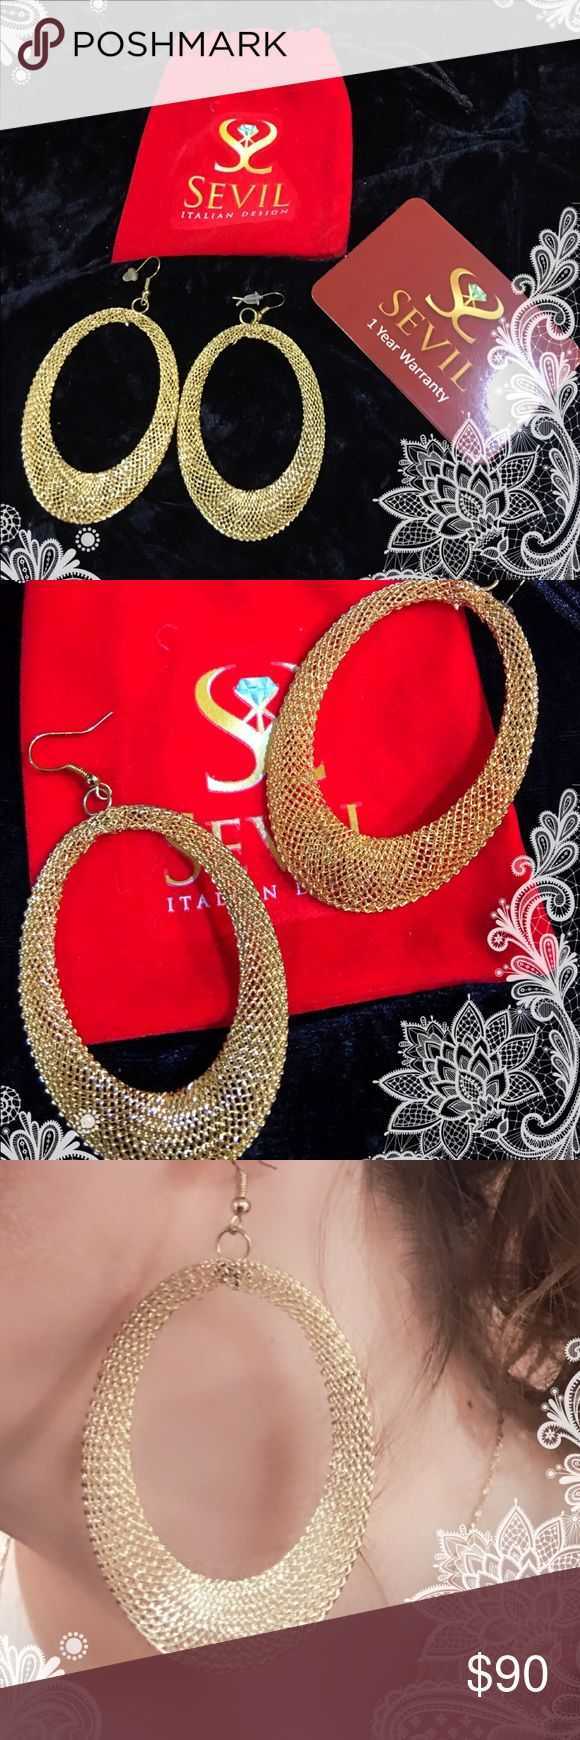 "Sevil 18K Gold Earrings 18K Gold Mesh Endless Hoop Earrings 2""W 3""L Fine Jewelry is the leading Brand in the Gold plating process, this unique selection is guaranteed to elevate your style with these elegant hoop earrings. Breathtaking Gold mMesh is light yet very sturdy. Made in 🇧🇷 Brazil ( its hard to show how they shine) Sevil Jewelry Earrings"